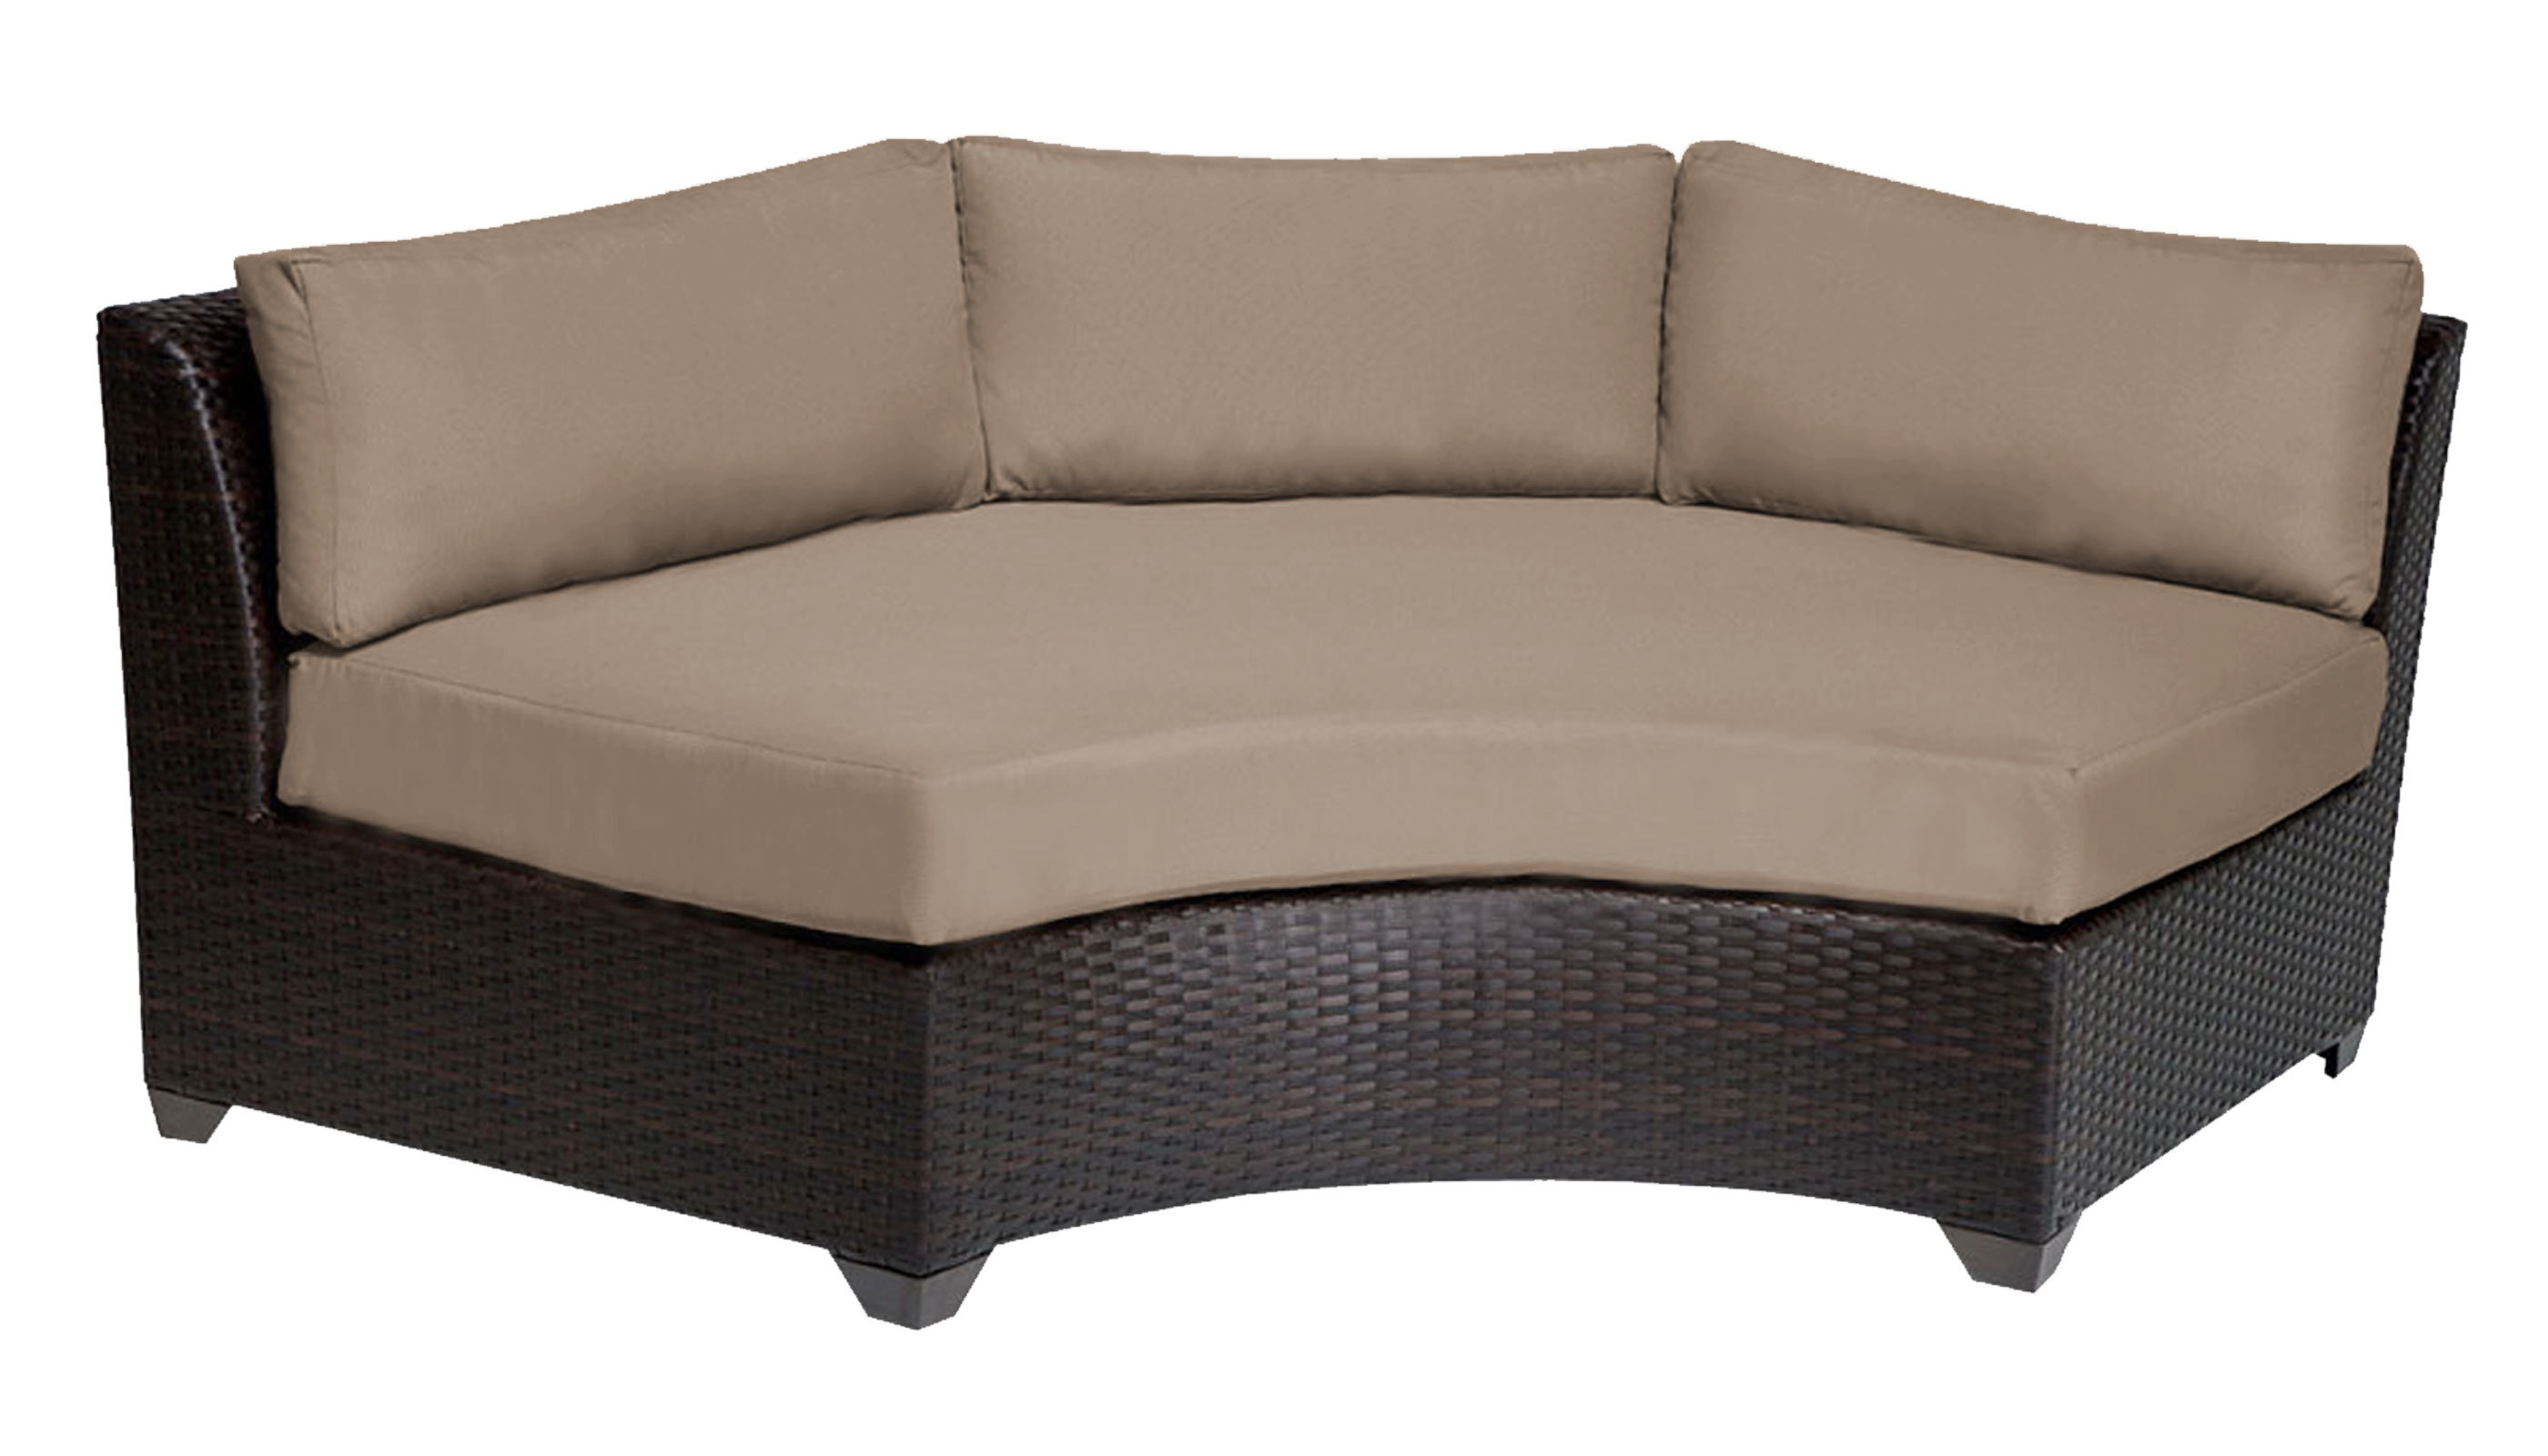 Preferred Waterbury Curved Armless Sofa With Cushions Within Camak Patio Sofa With Cushions (View 10 of 20)